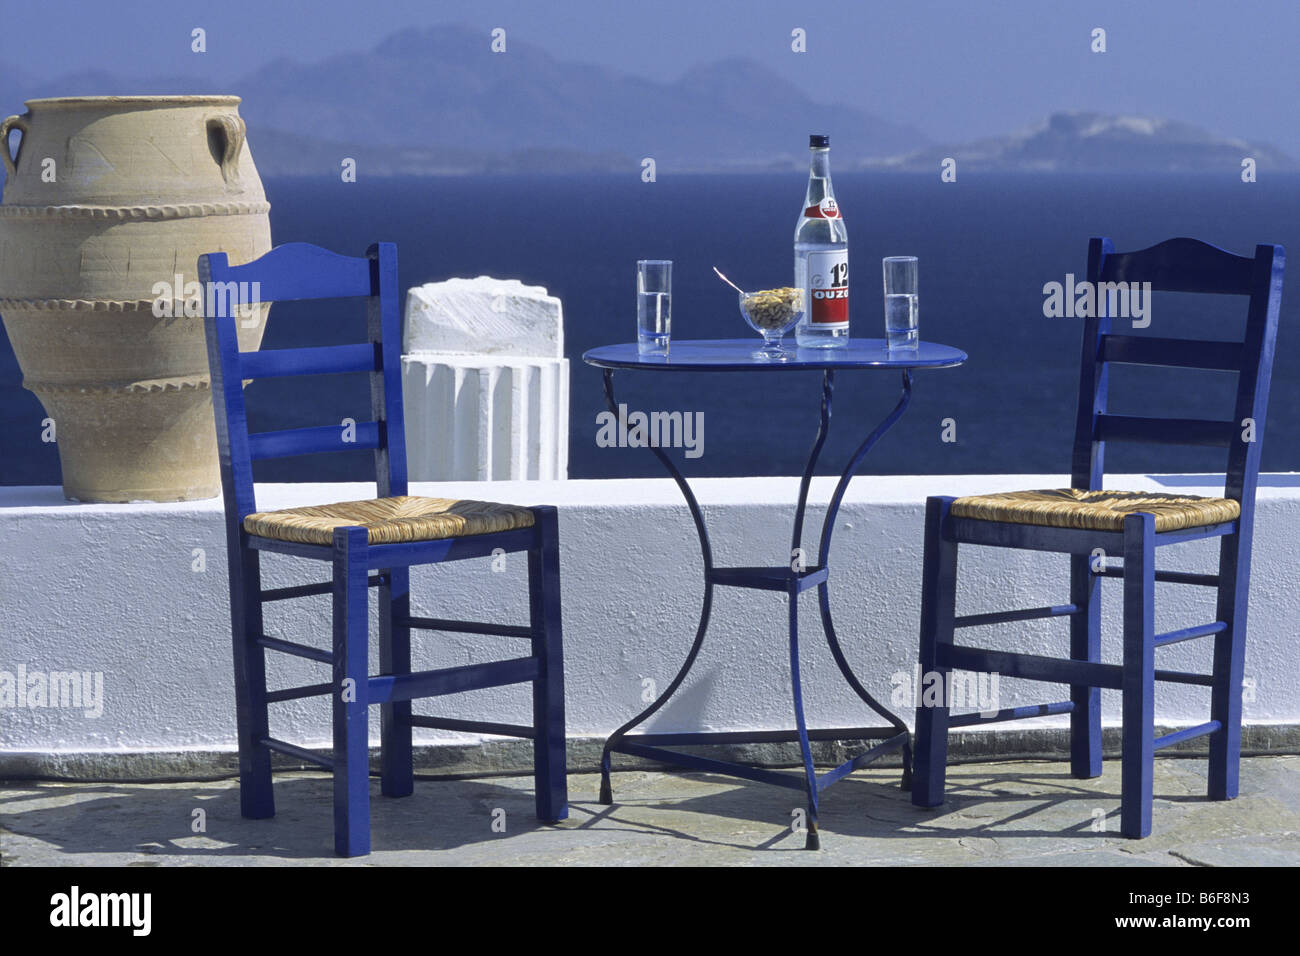 Merveilleux Blue Chairs And Table With Ouzo Bottle In Front Of White Wall, Mediterranean  In Background, Greece, Kos